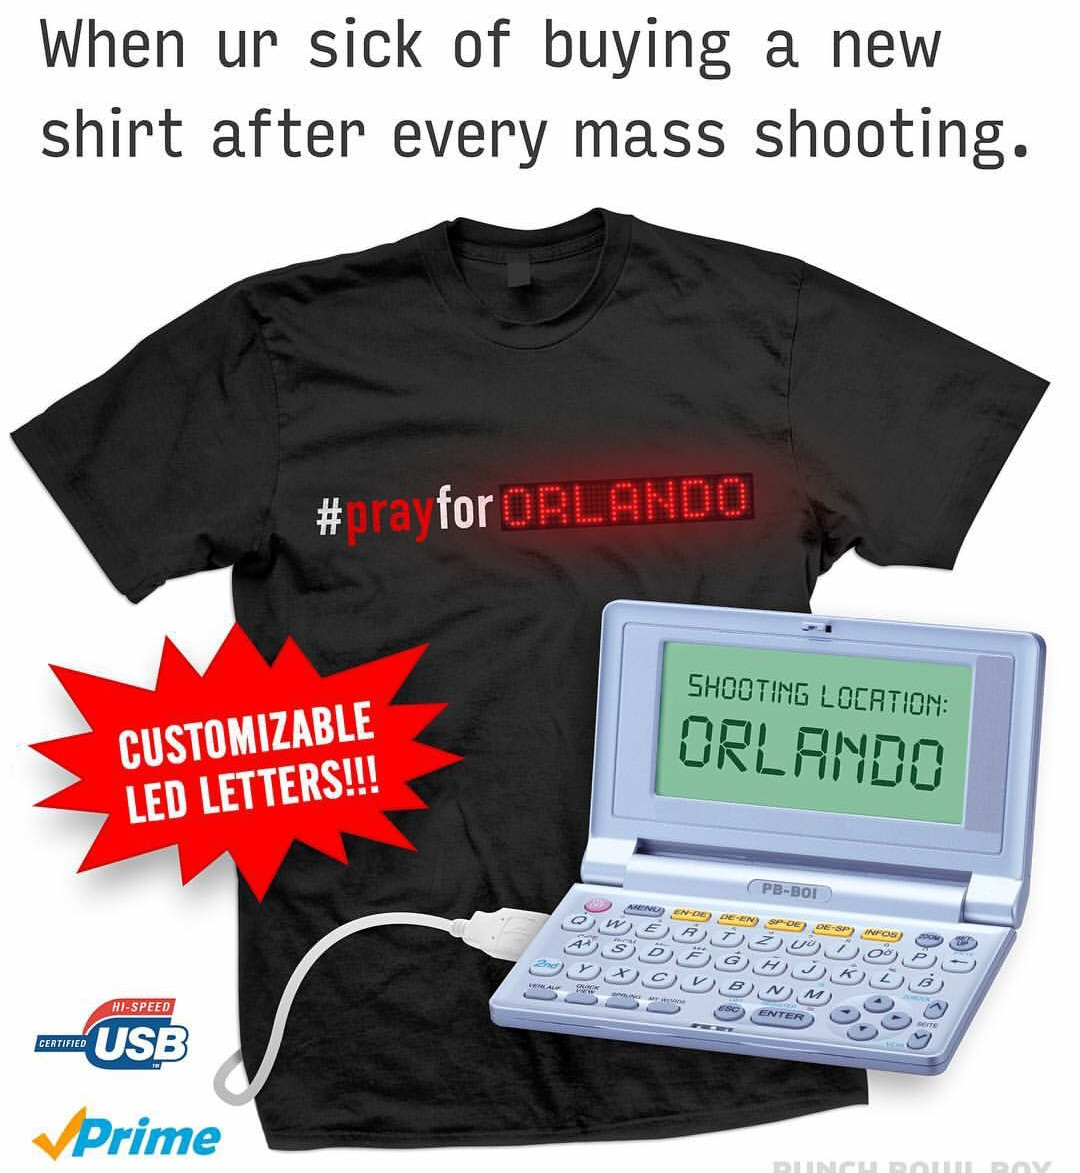 When ur sick of buying a new shirt after every mass shooting